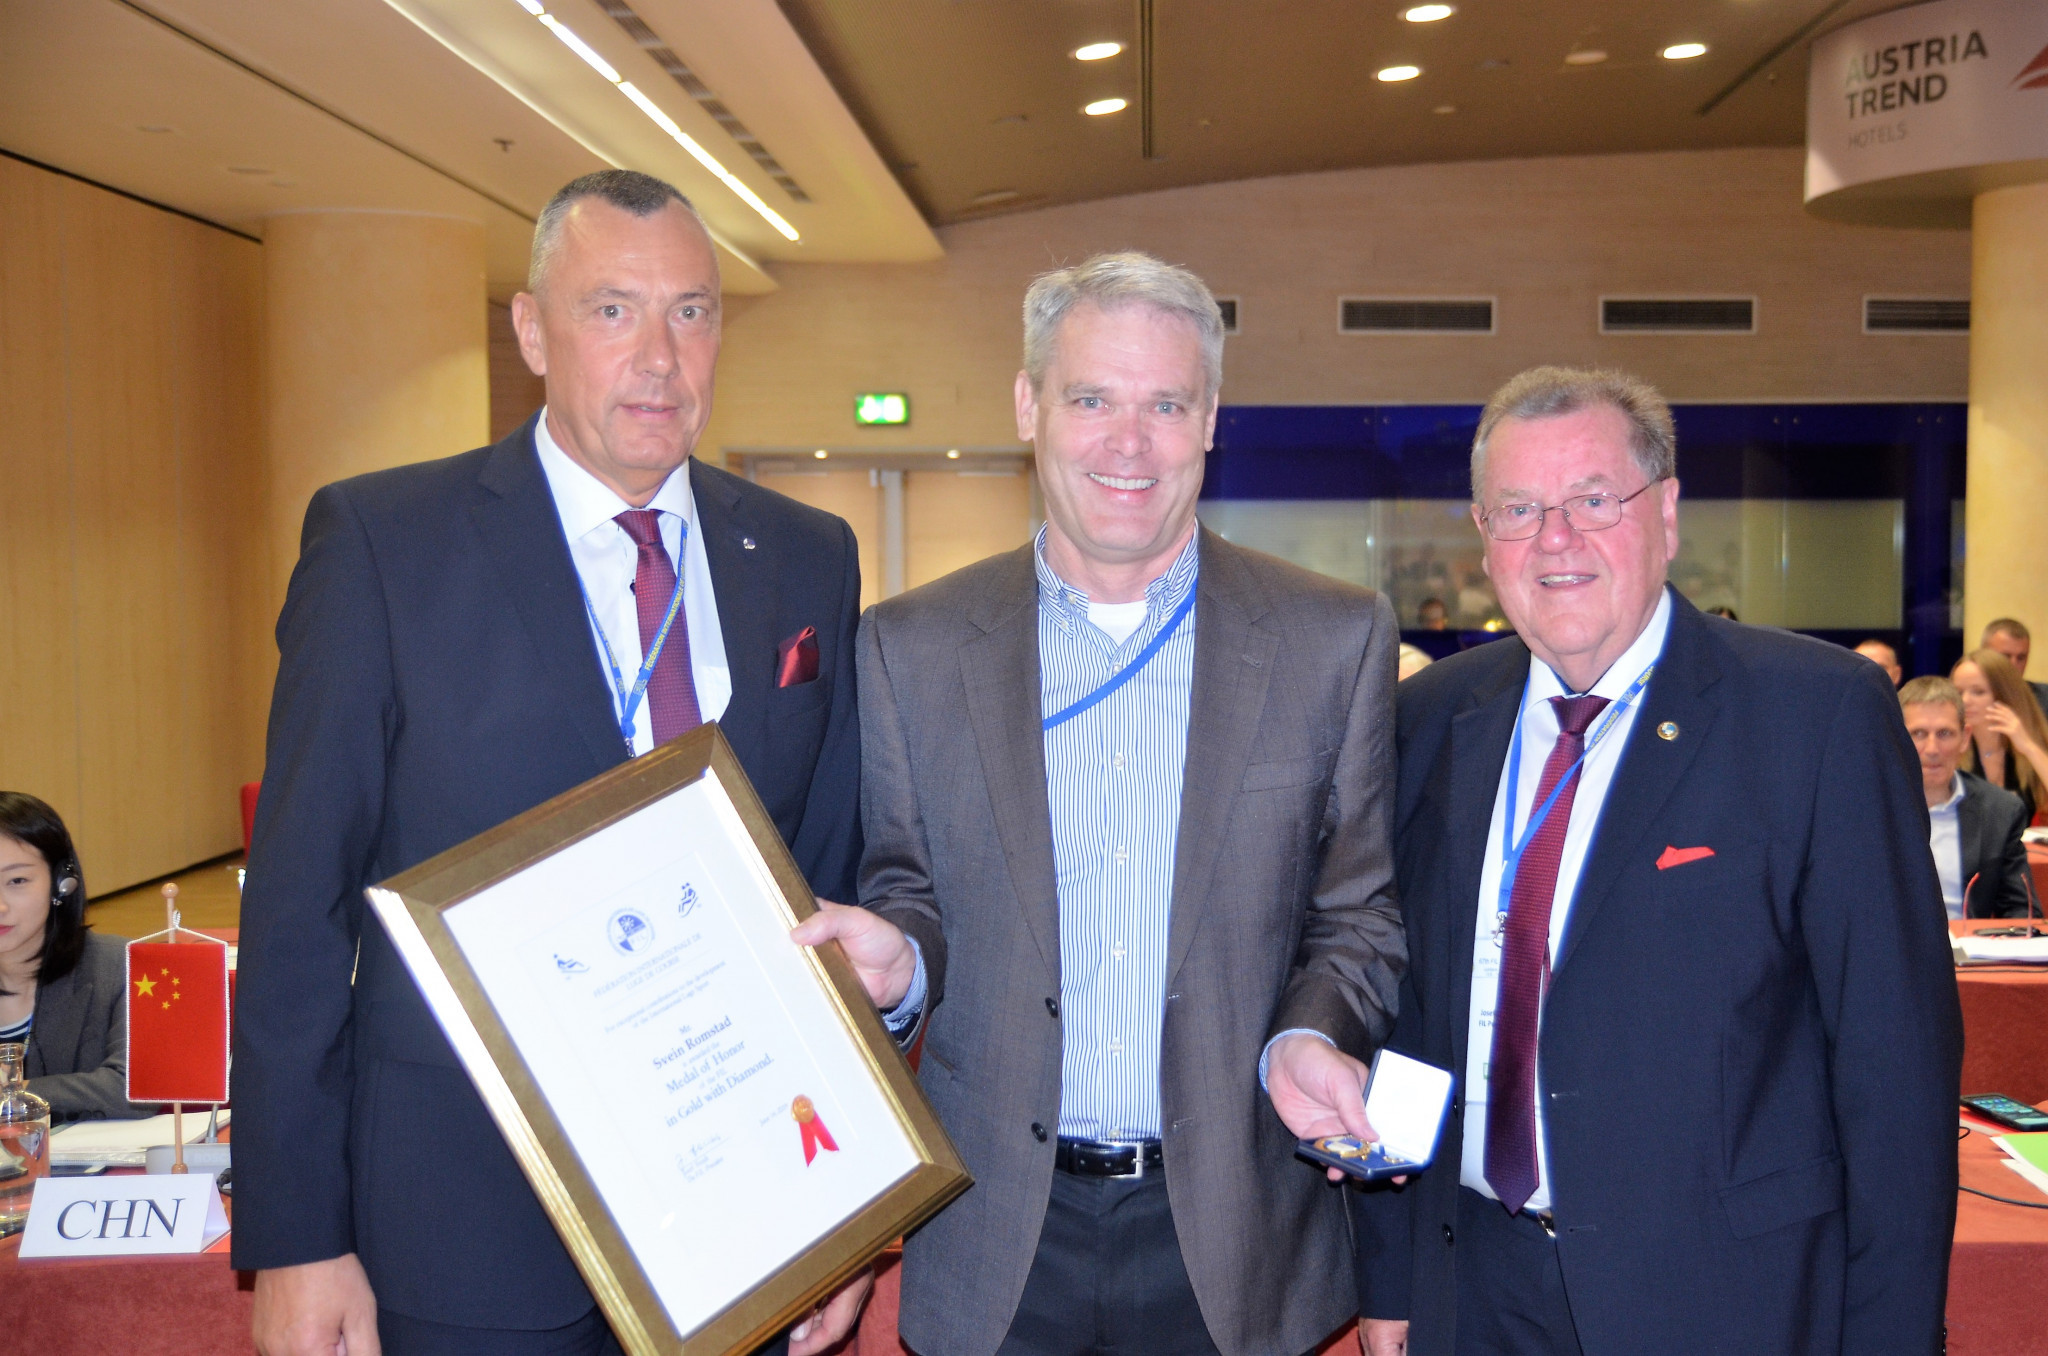 Former FIL secretary general Svein Romstad was awarded the medal of honour in gold with diamonds ©FIL